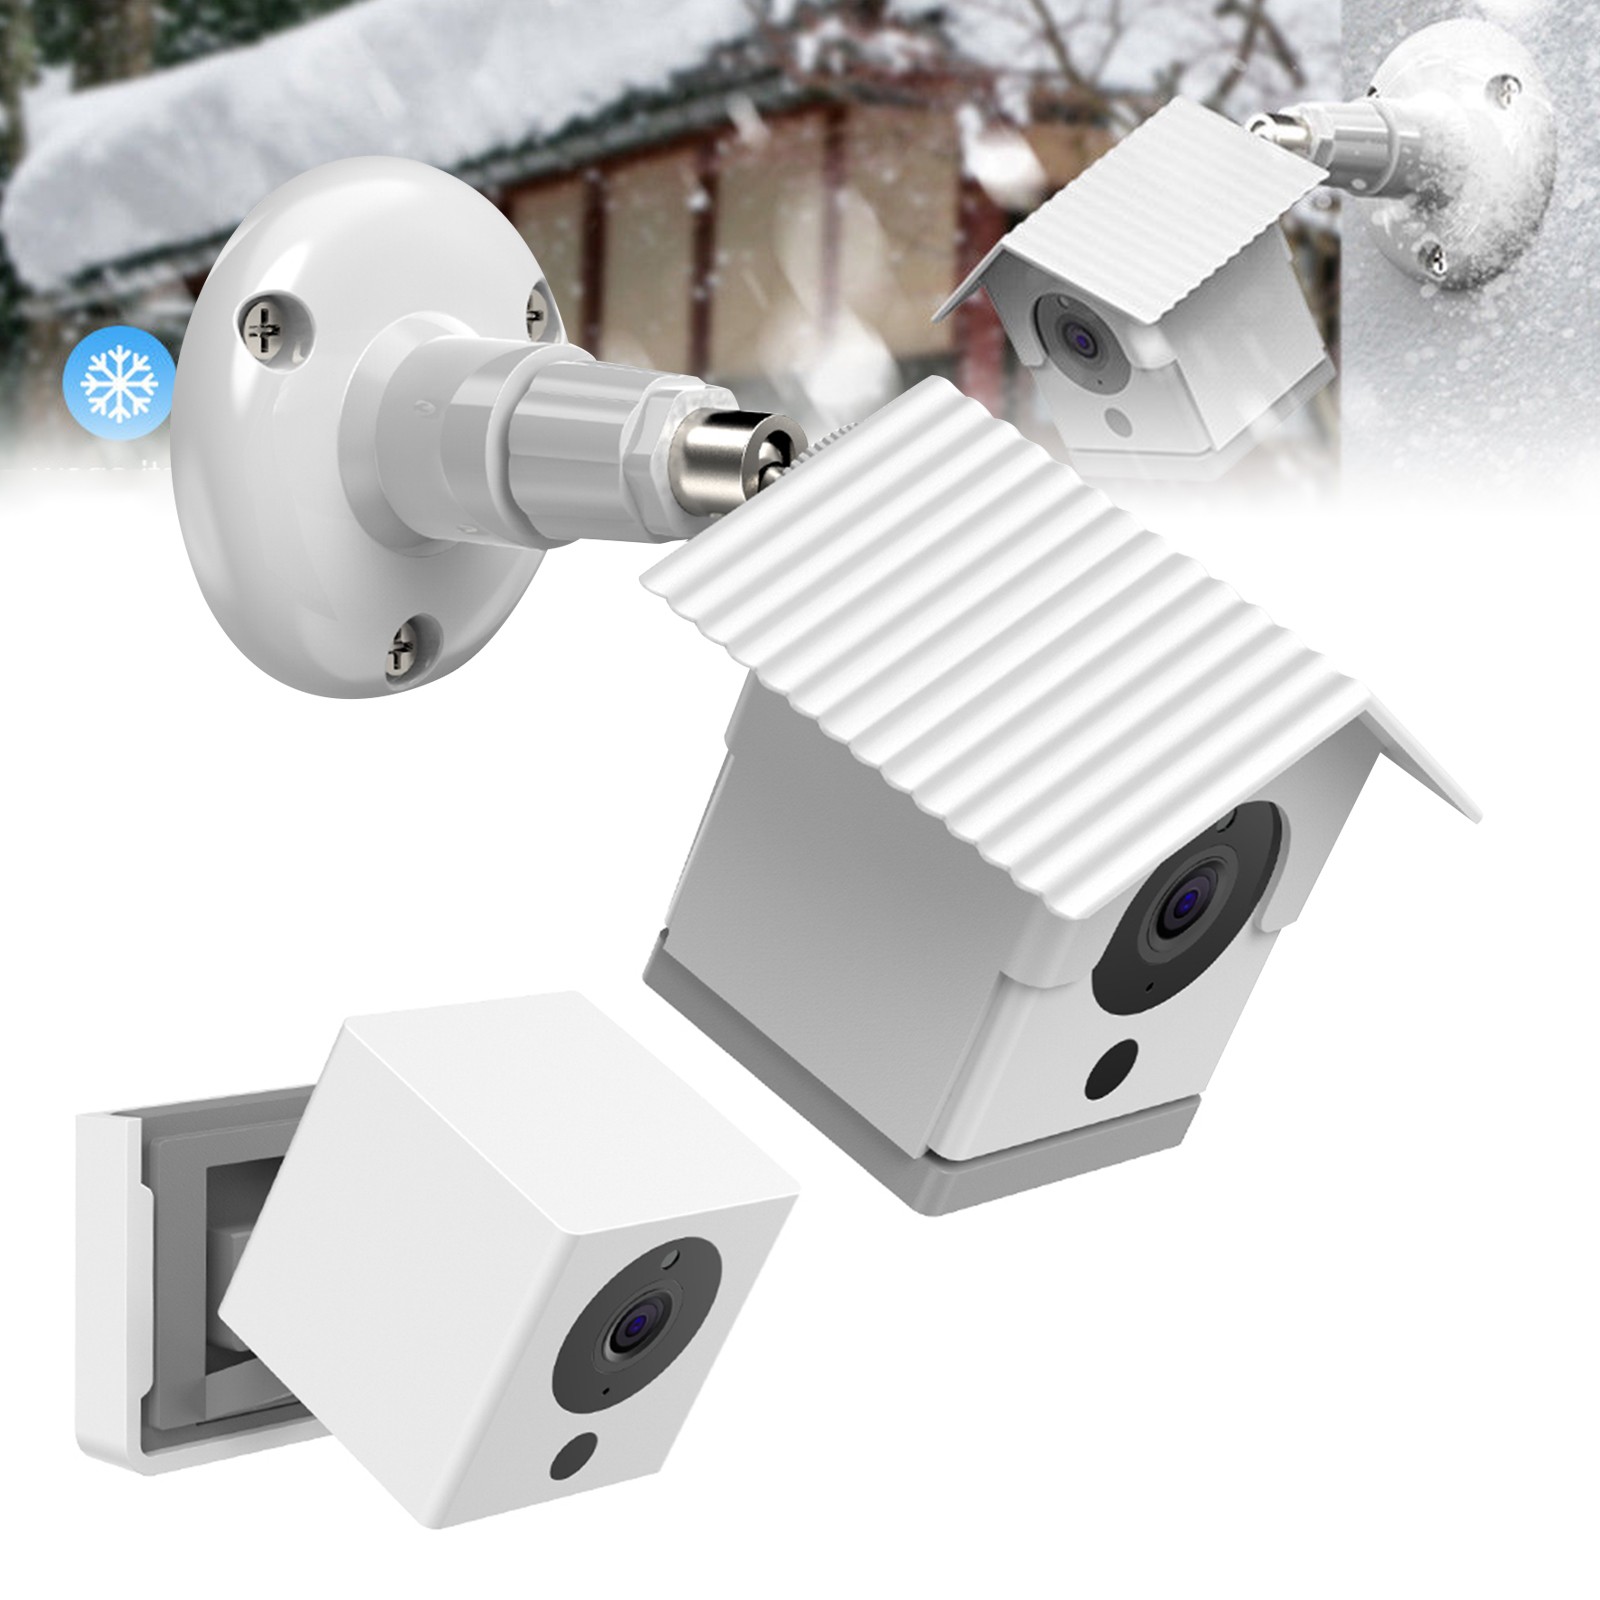 Details about Security Wall Mount Stand Holder for Wyze Cam 1080p HD Camera  Adjustable Bracket